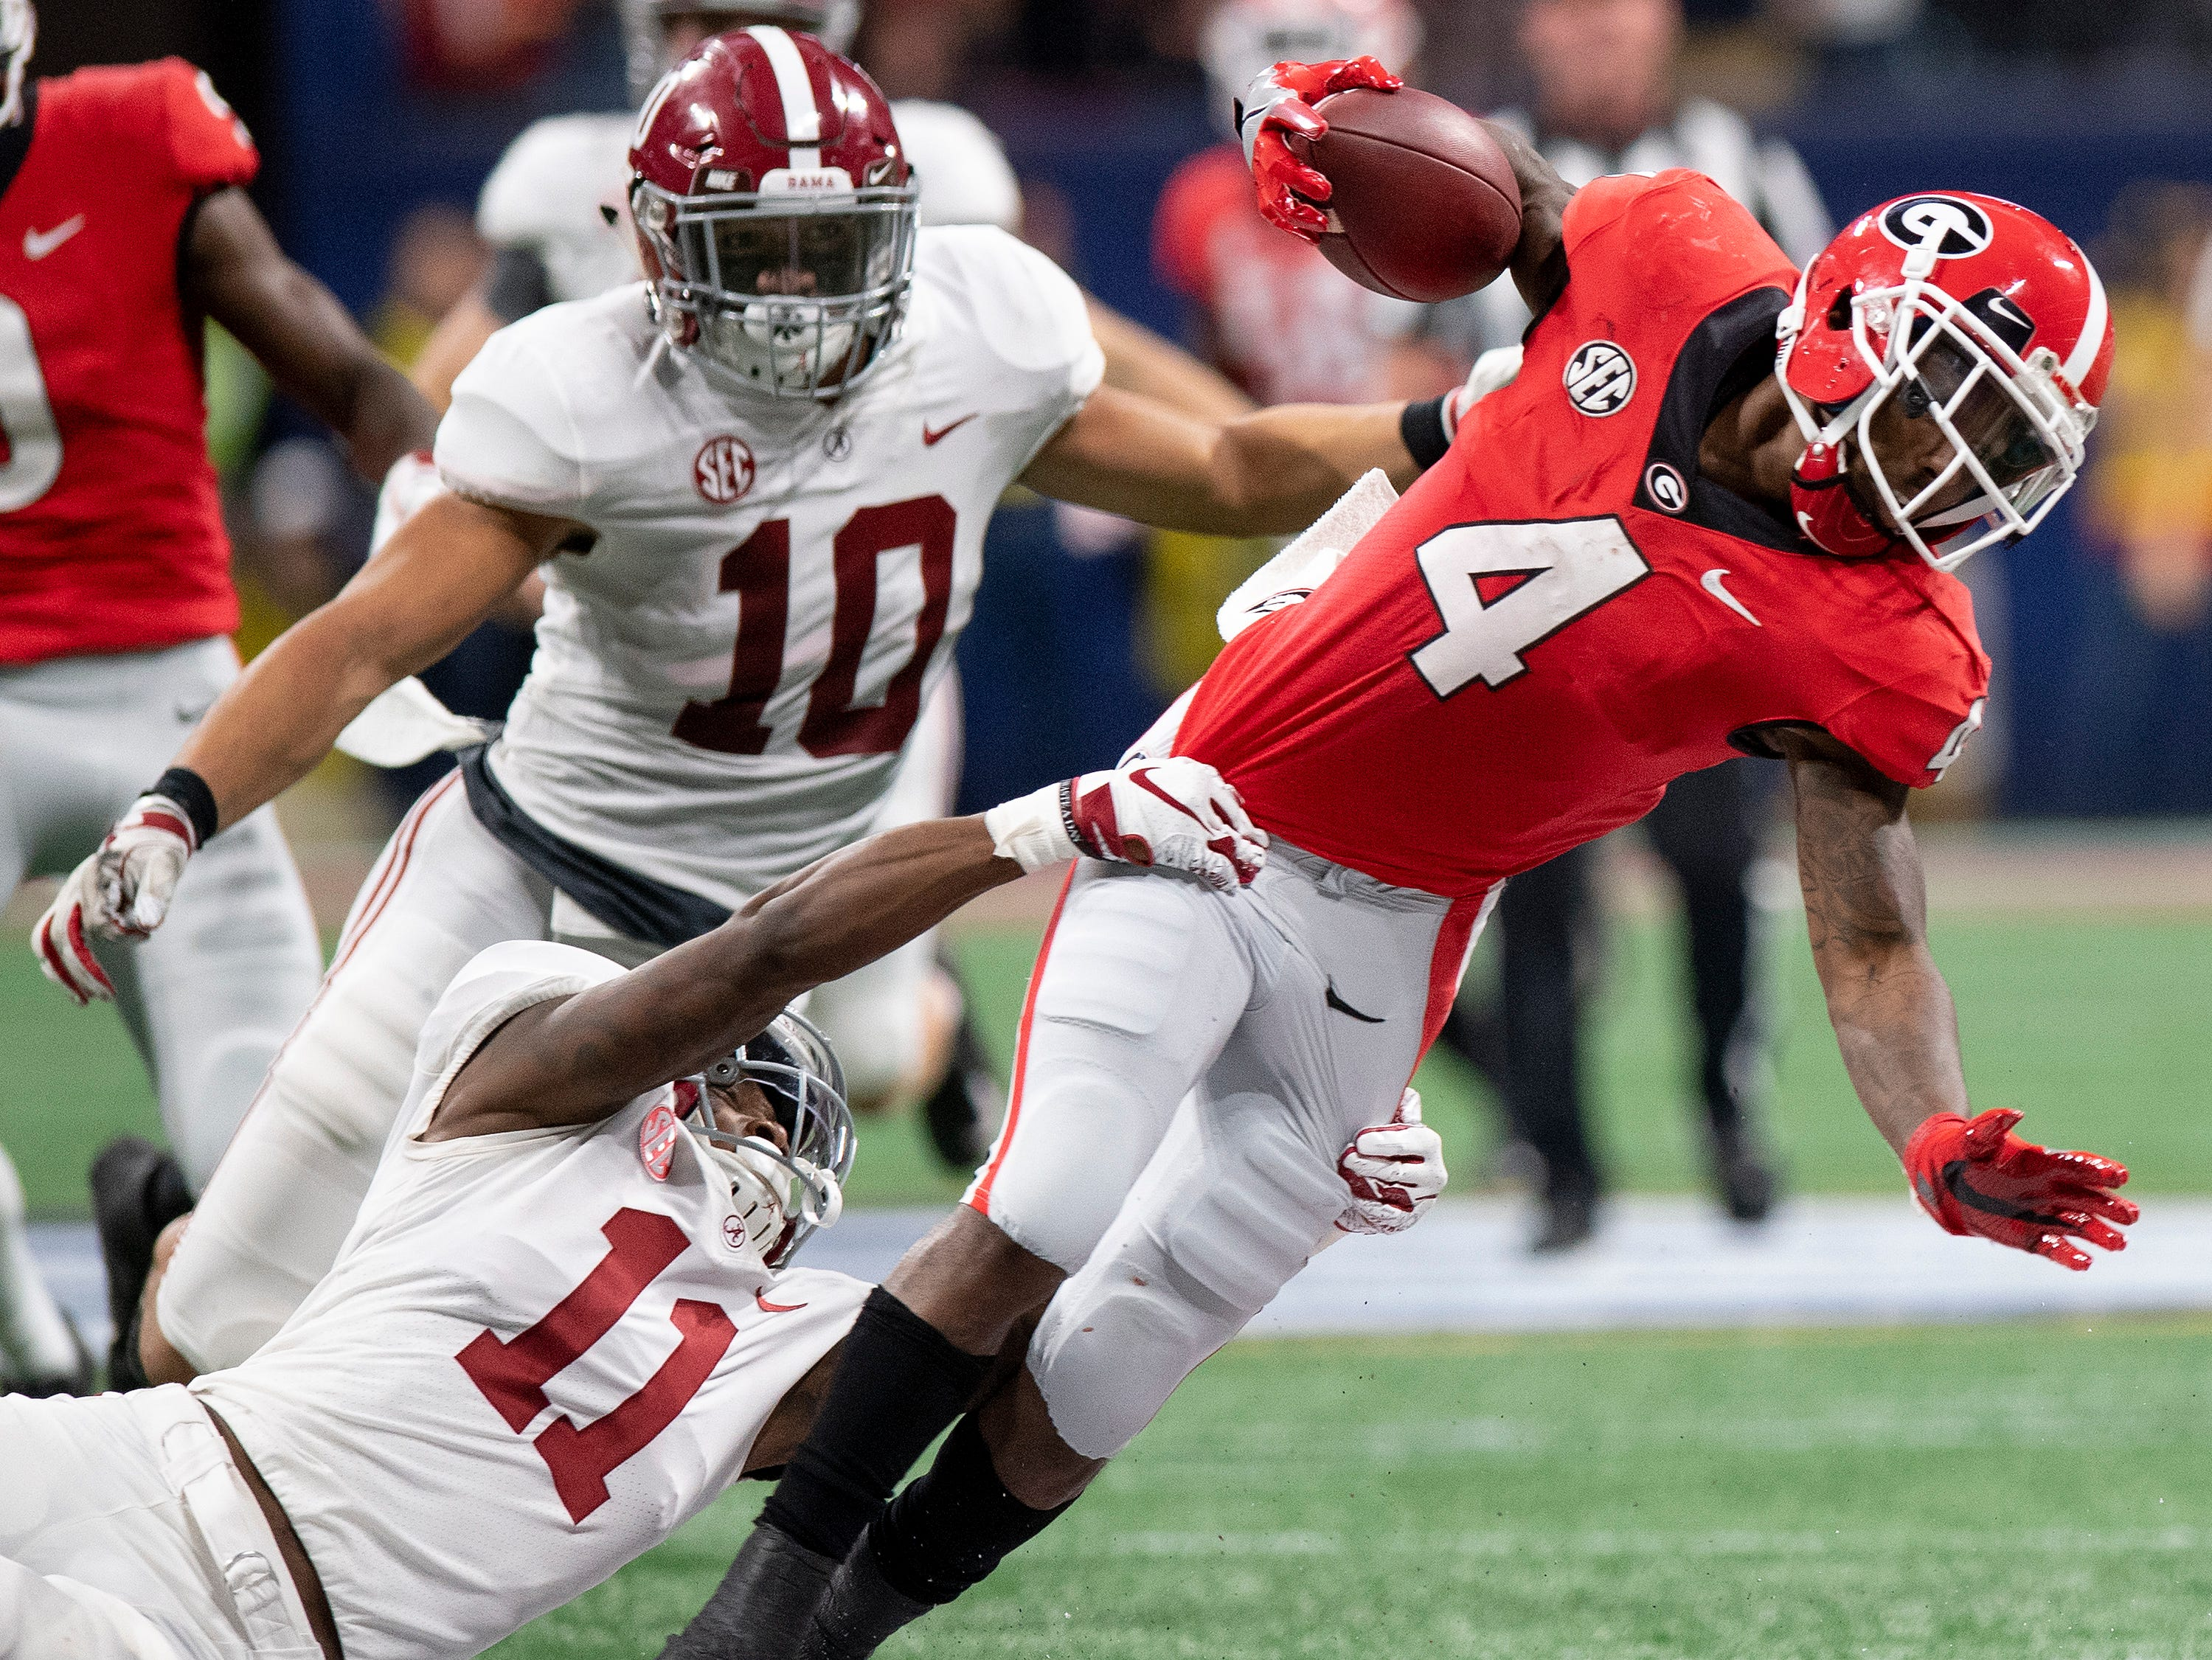 Alabama wide receiver Henry Ruggs, III, (11) stops Georgia wide receiver Mecole Hardman (4) on a kick return in the SEC Championship Game at Mercedes Benz Stadium in Atlanta, Ga., on Saturday December 1, 2018.